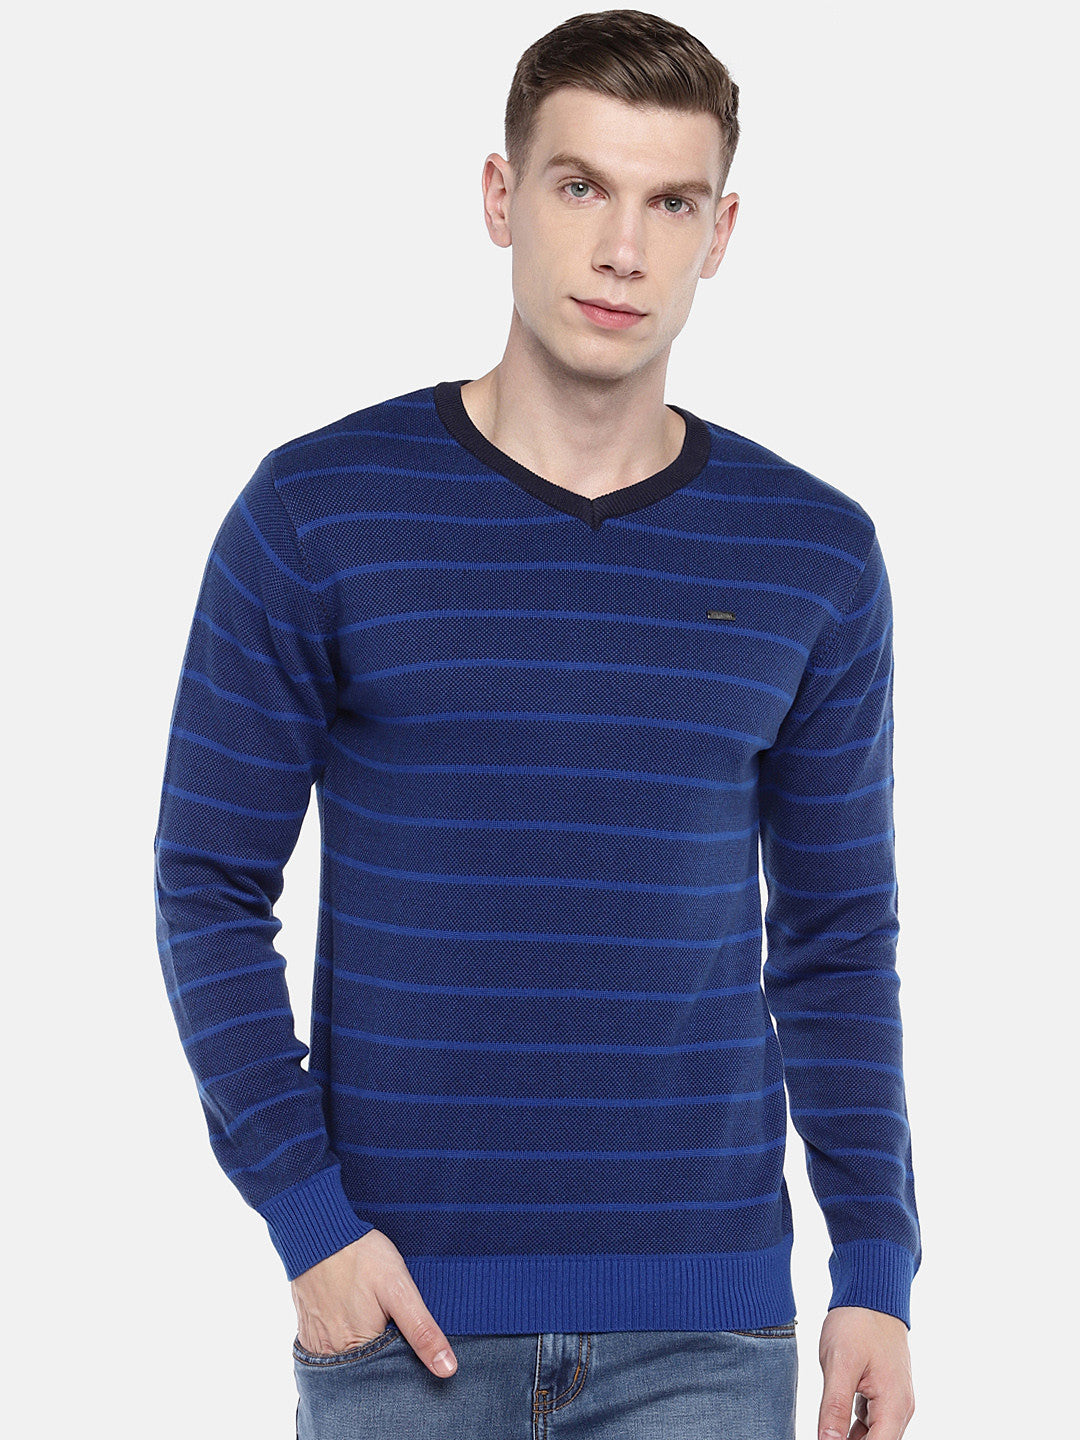 Blue Striped Pullover Sweater-1